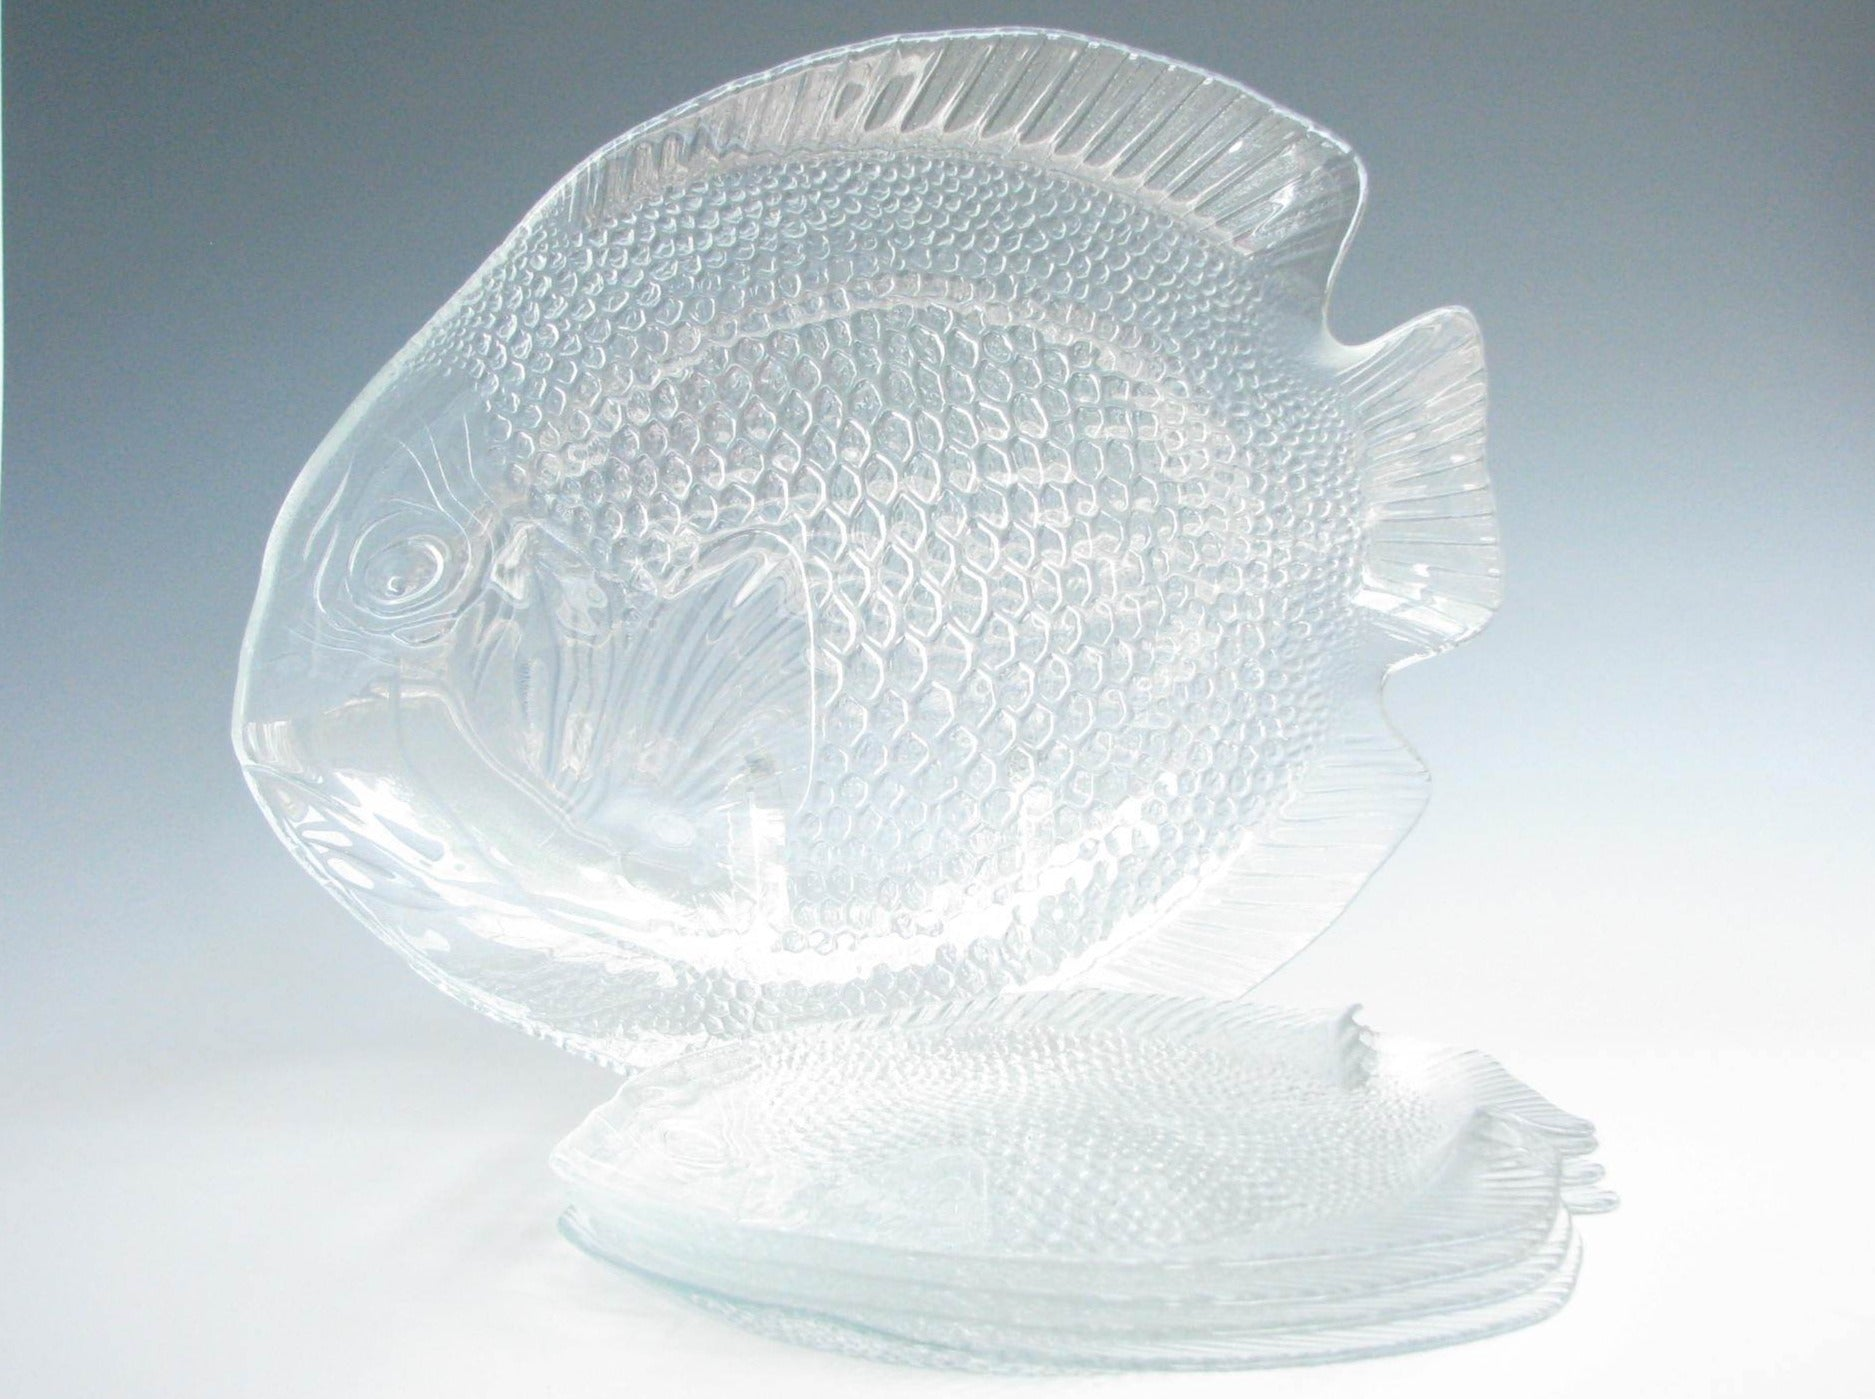 edgebrookhouse - Vintage Arcoroc France Poisson Fish Shaped Glass Platter and Plate Set - 5 Pieces